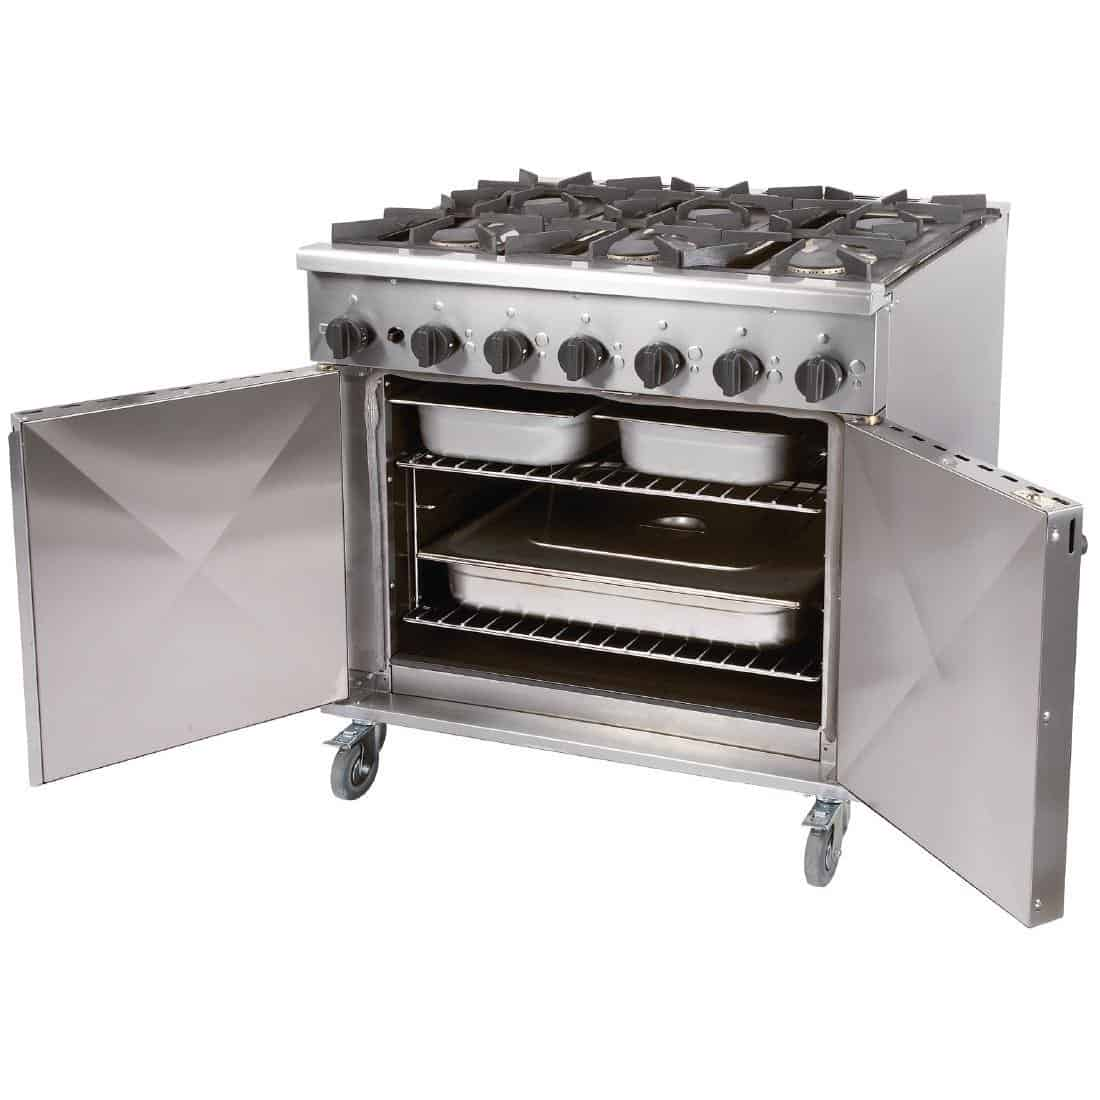 6 Burner Propane Gas Oven For Hire Herts Beds Bucks